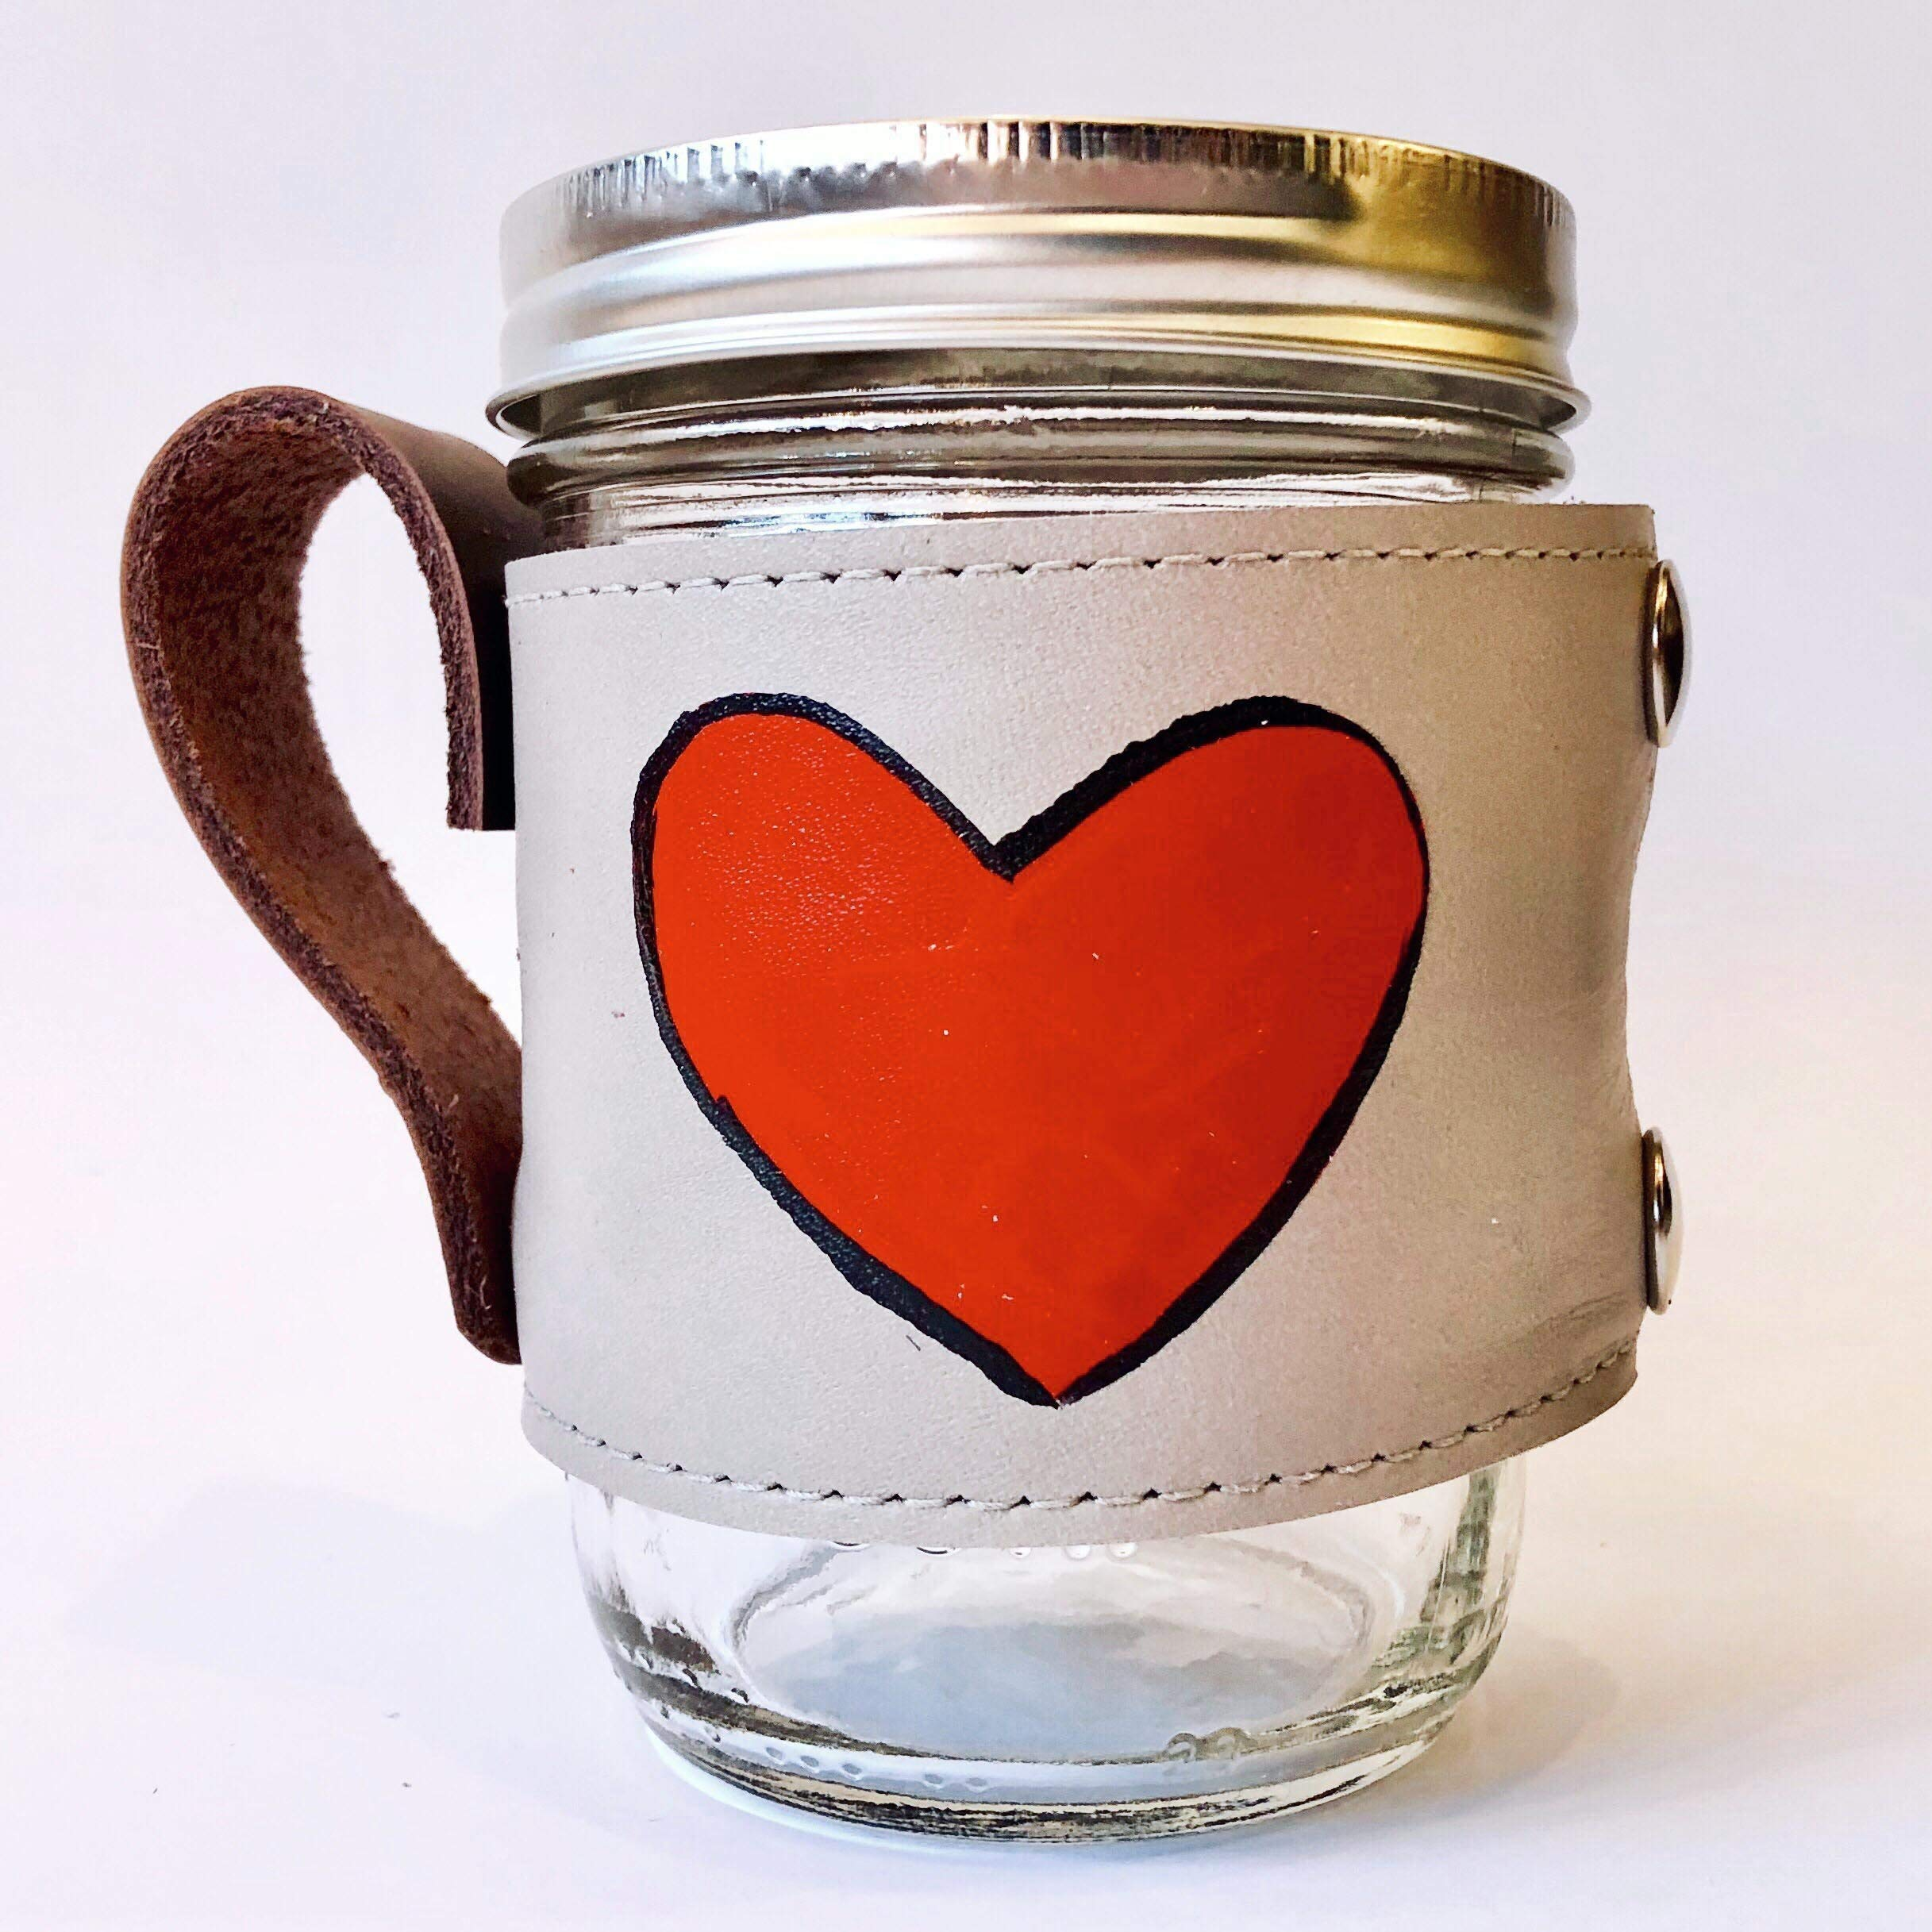 Hand painted removable red love heart mug with handle. Made in USA 16 oz. jar included.